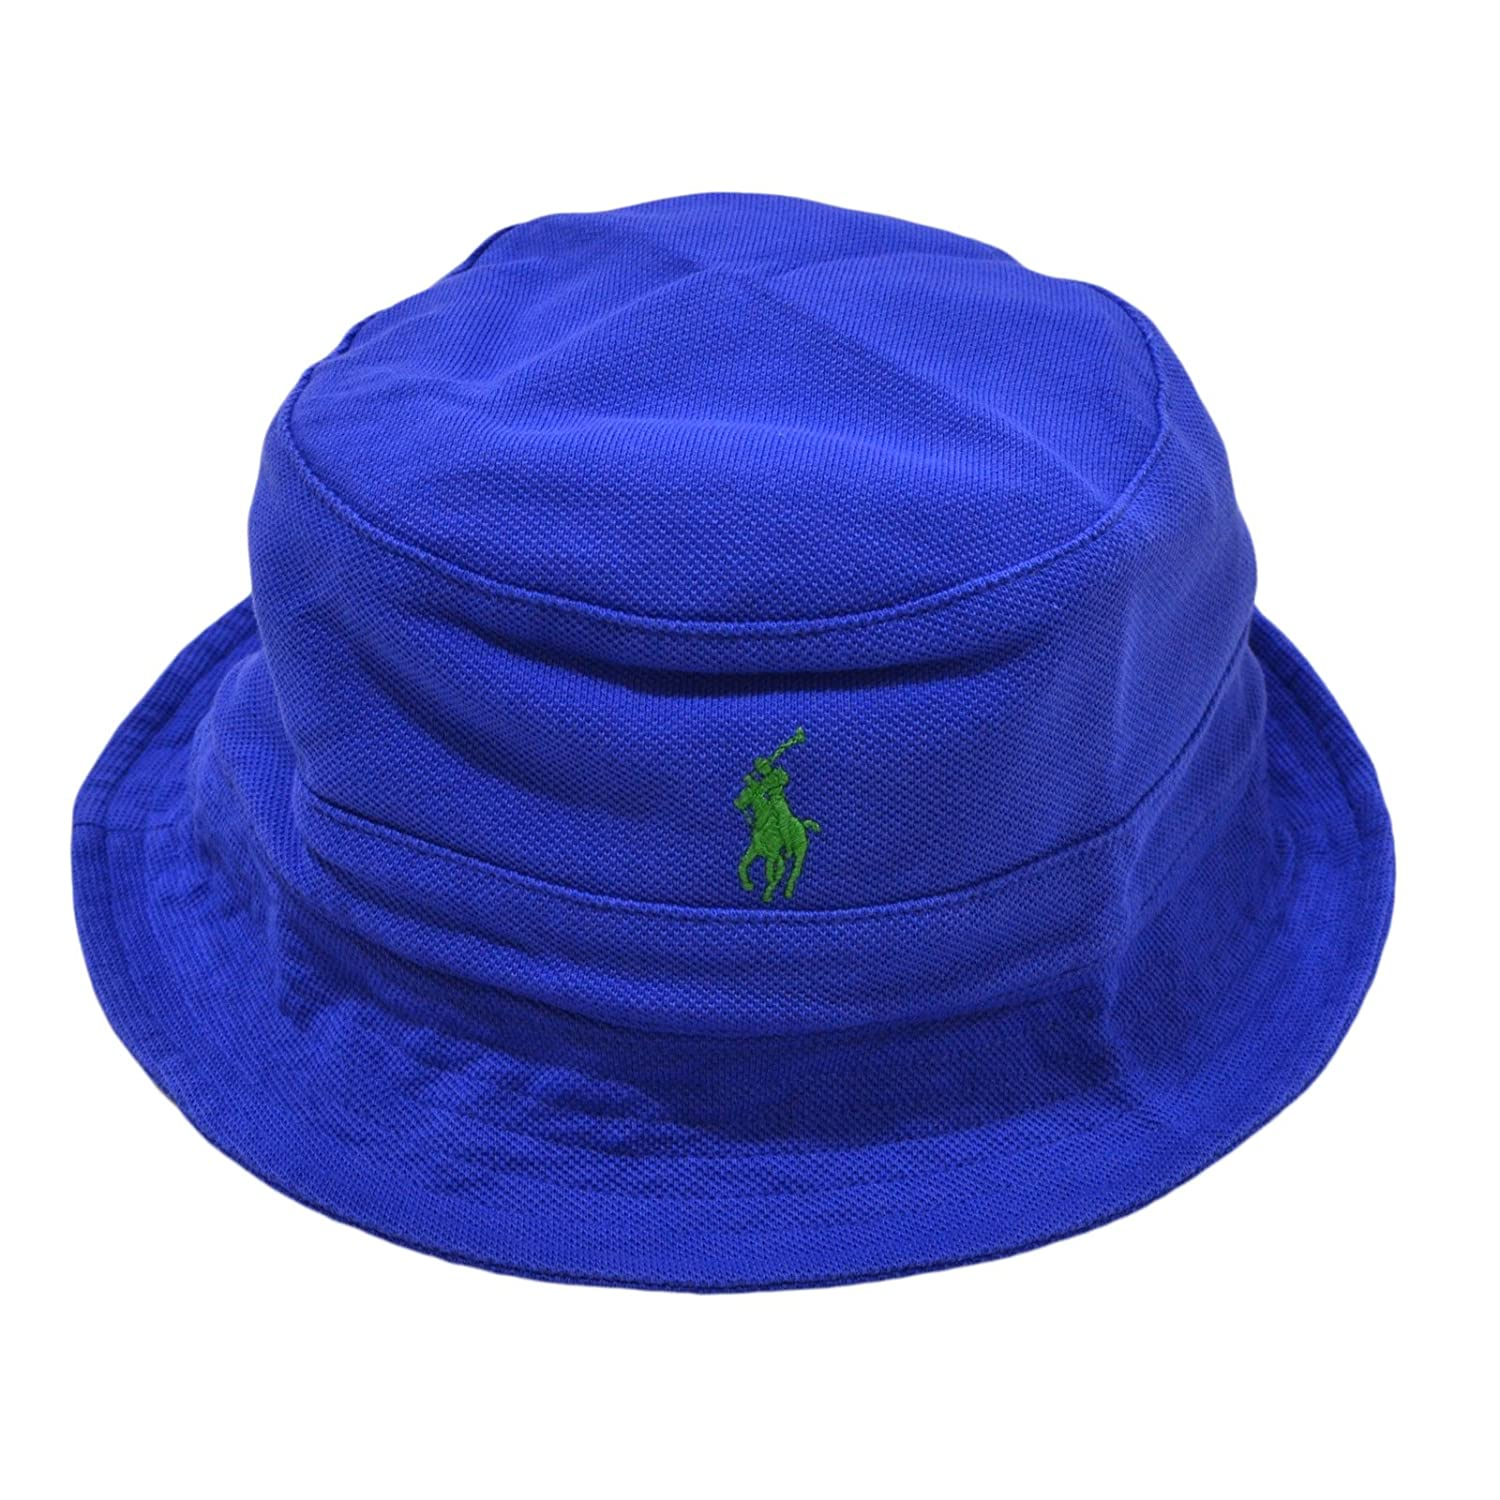 ab426096c351 Polo Ralph Lauren Mens Mesh Casual Bucket Hat Blue S M at Amazon Men s  Clothing store